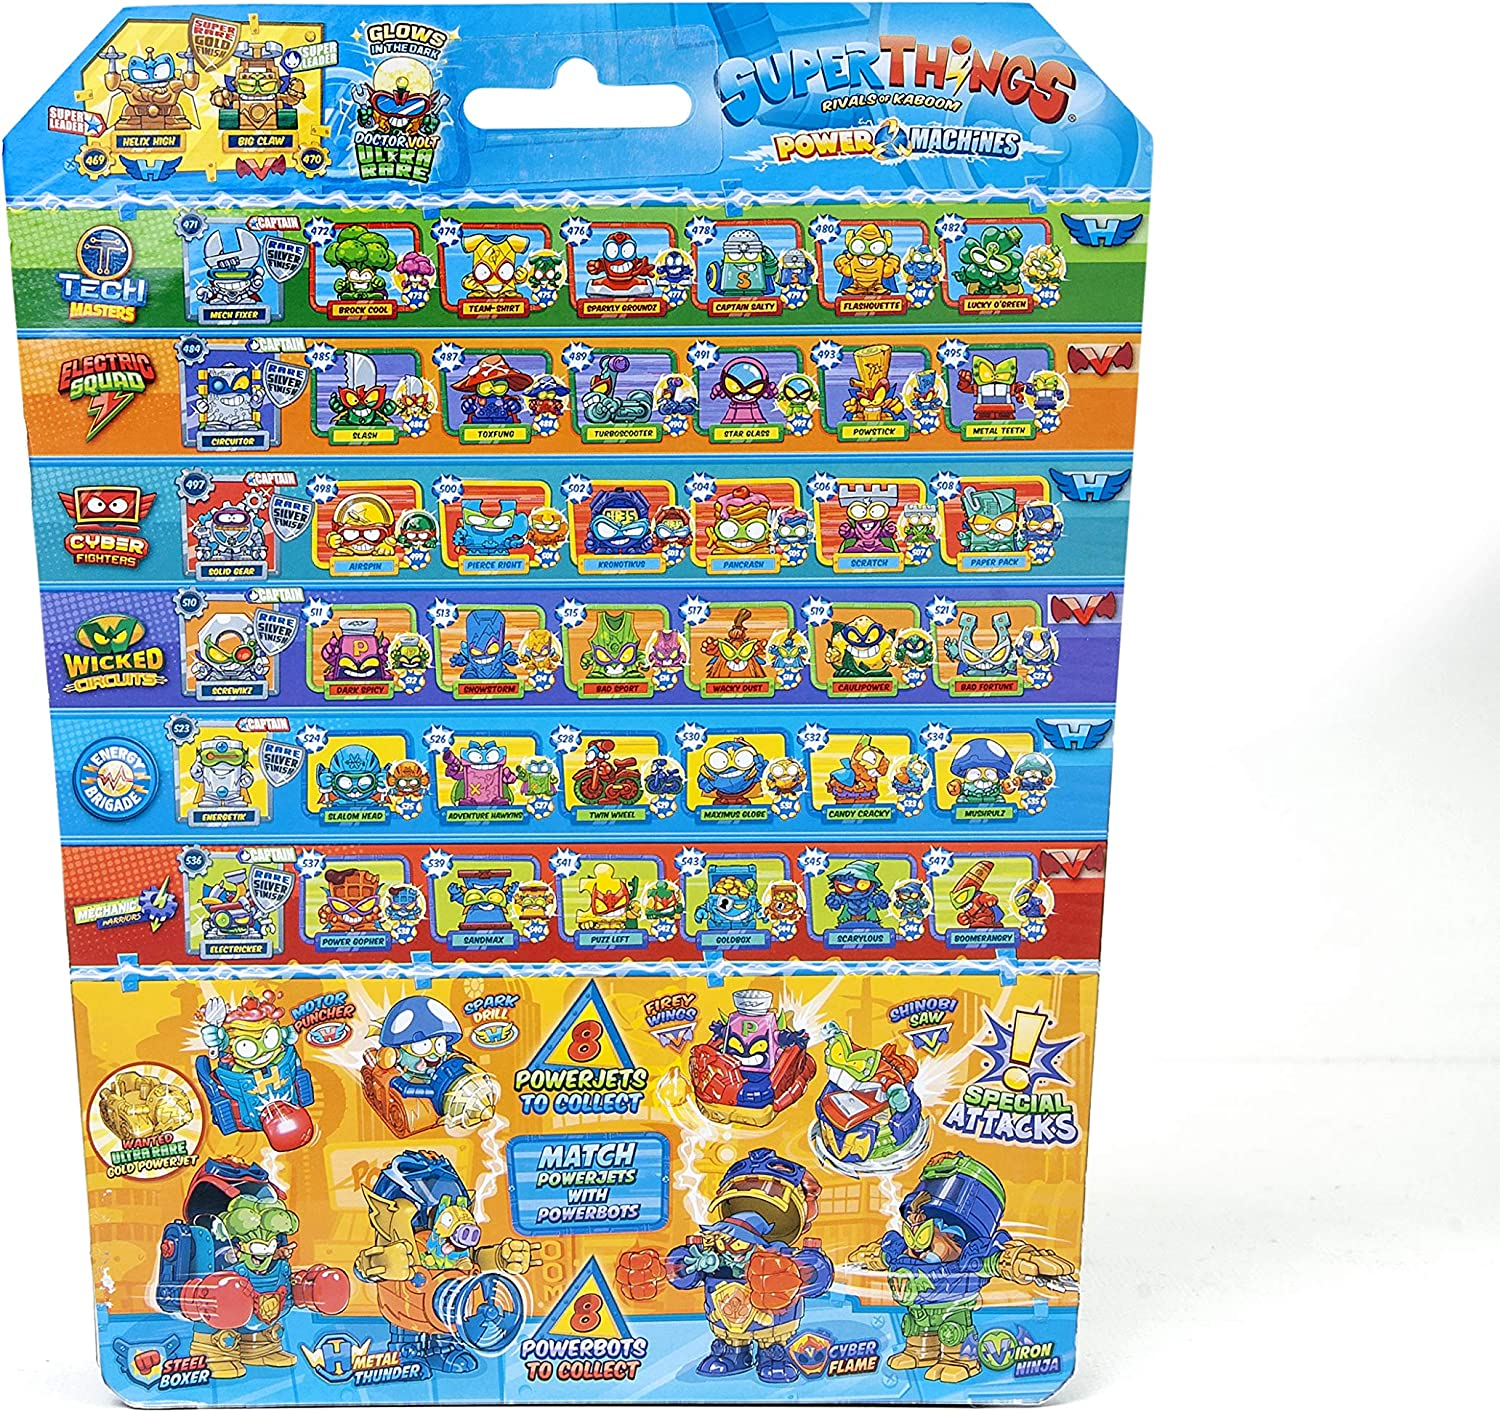 Amazon Com Superthings Power Machines Blister 10 Figures Contains 9 Superthings 1 Superthings Golden Toys Games